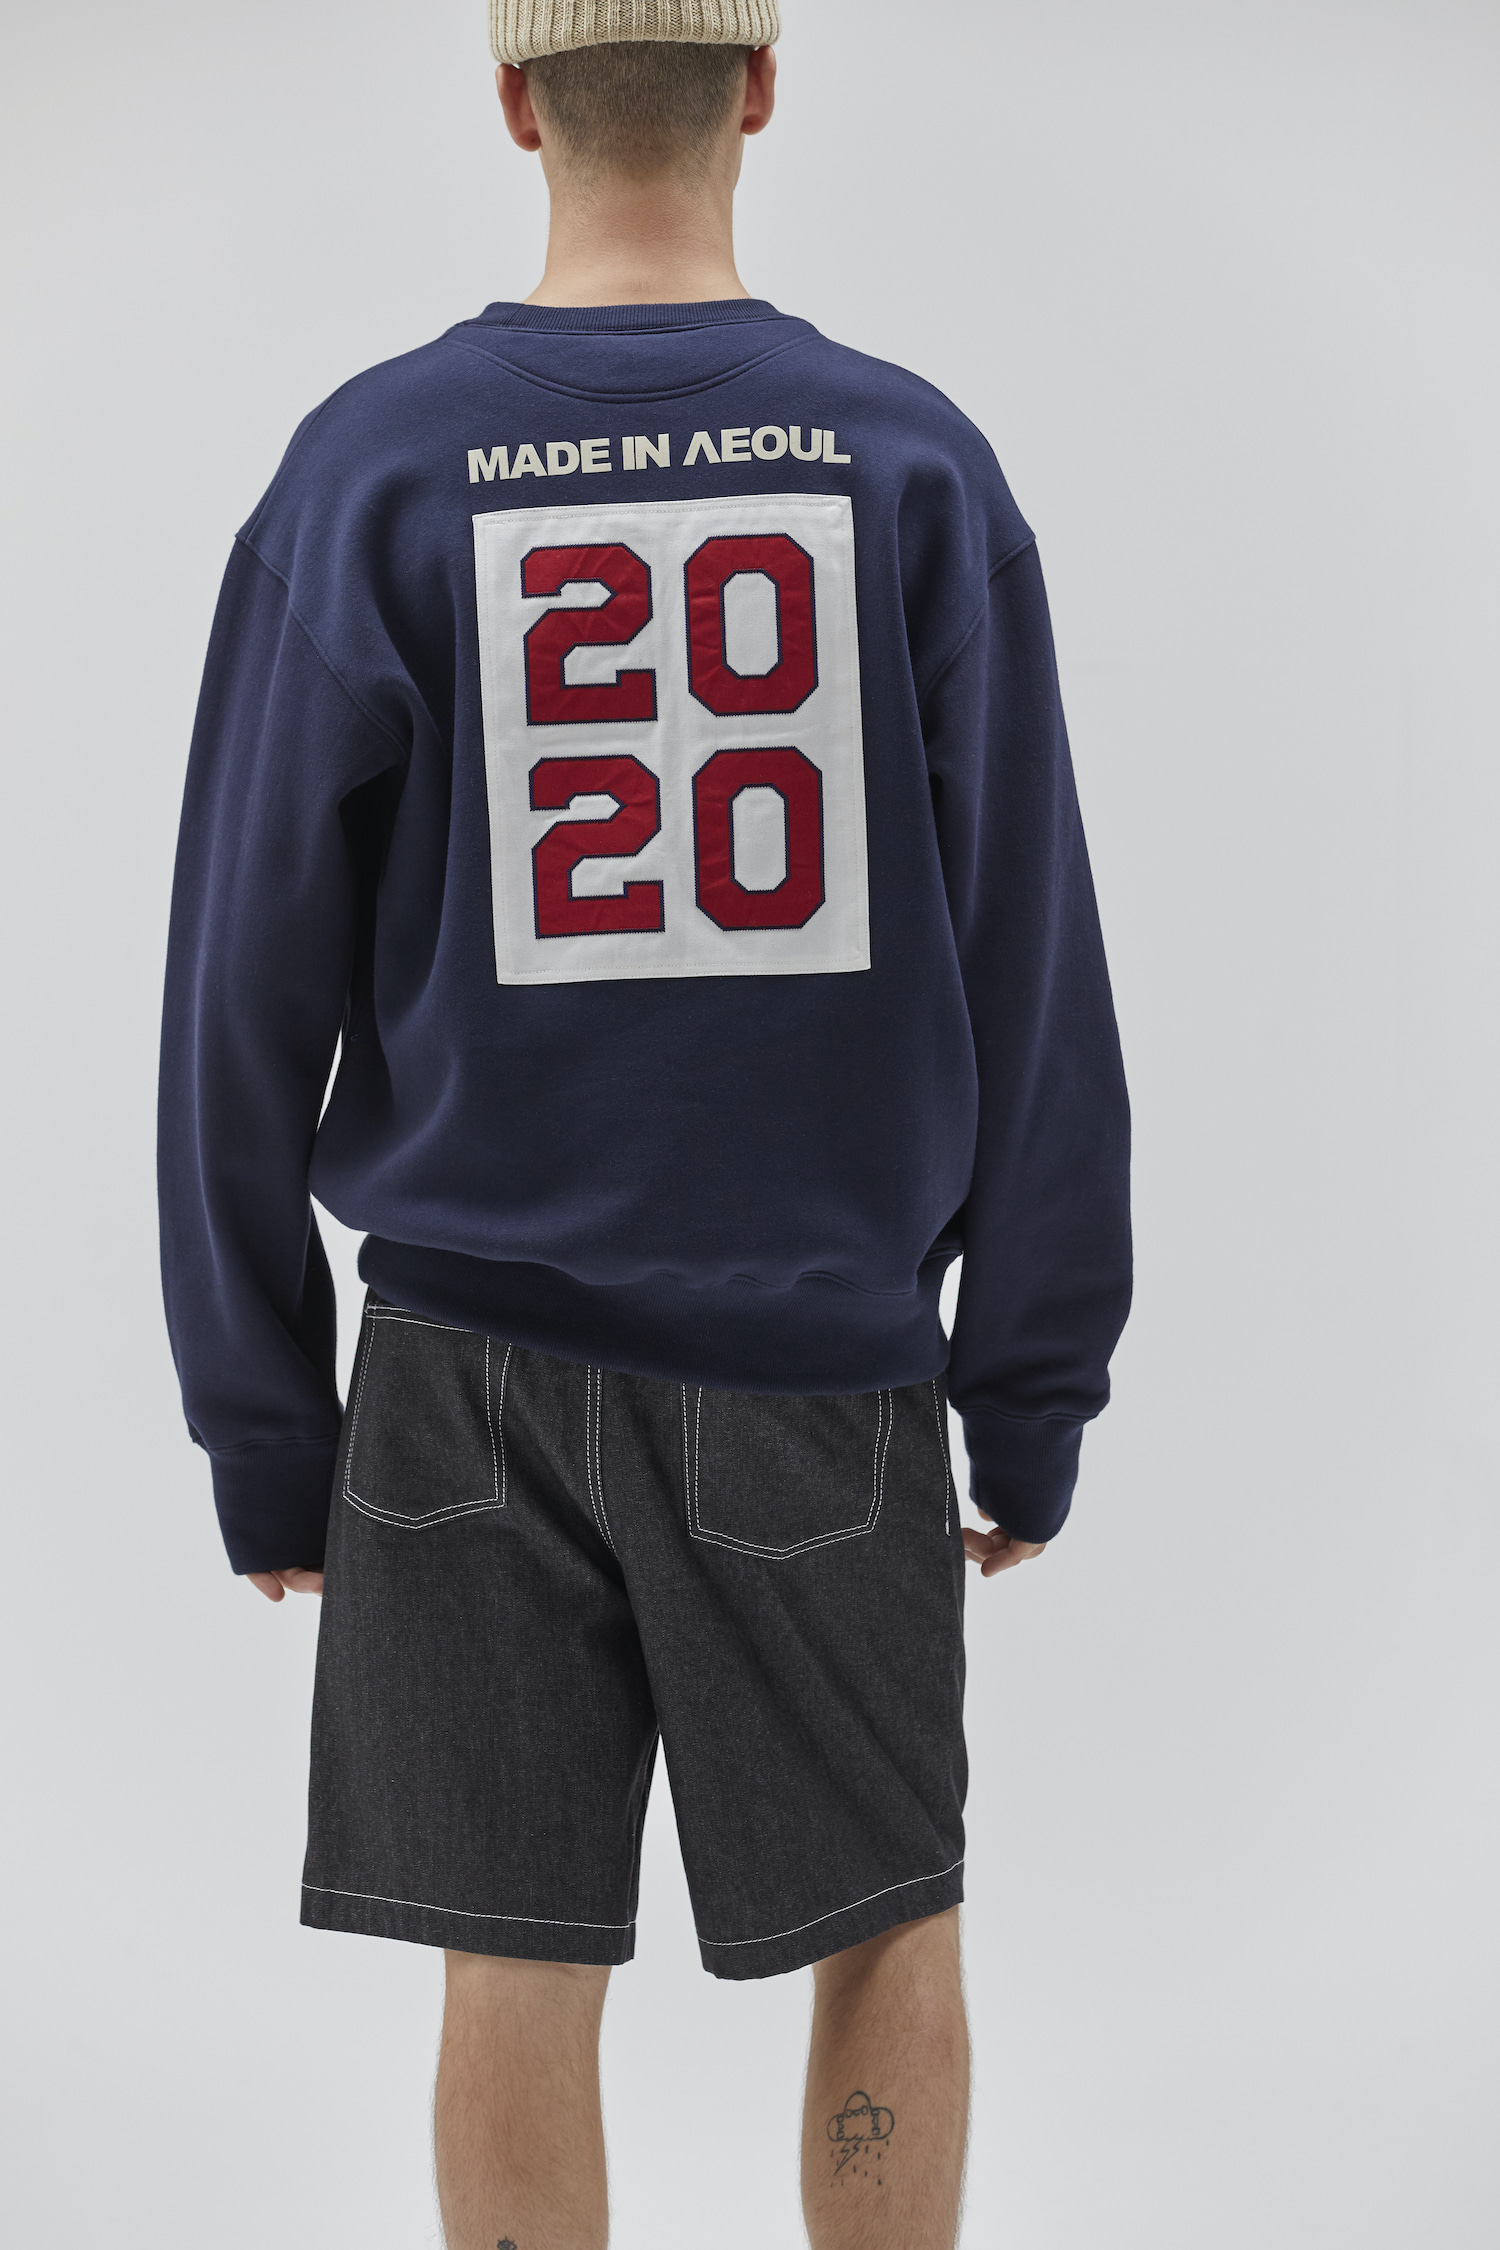 MADE IN SEOUL 2020 SWEATSHIRT NAVY